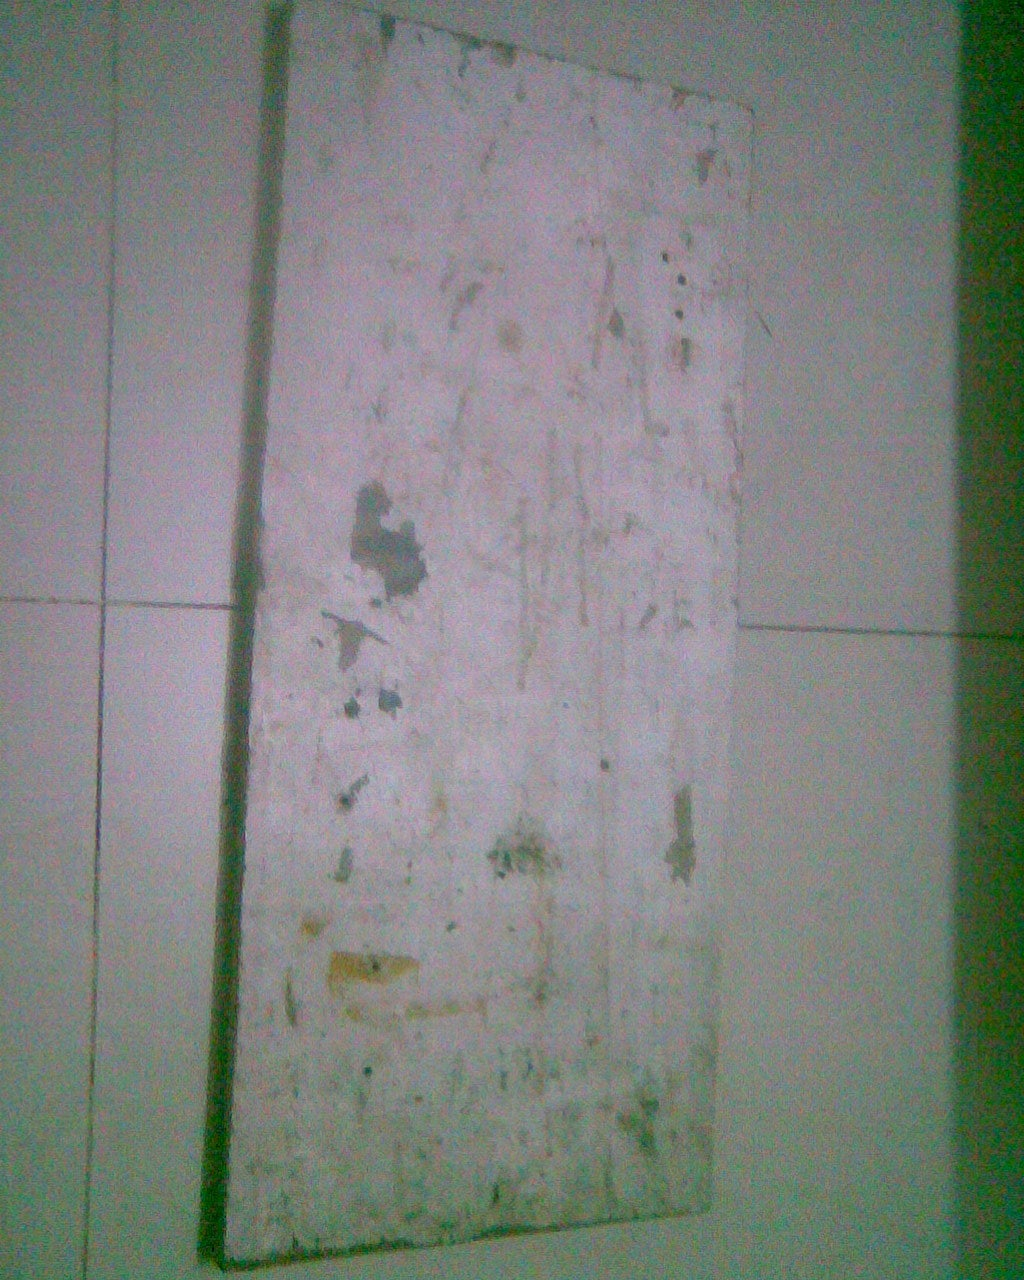 FIXING OF METAL CHANNEL(SUPPORT) TO PLYWOOD.